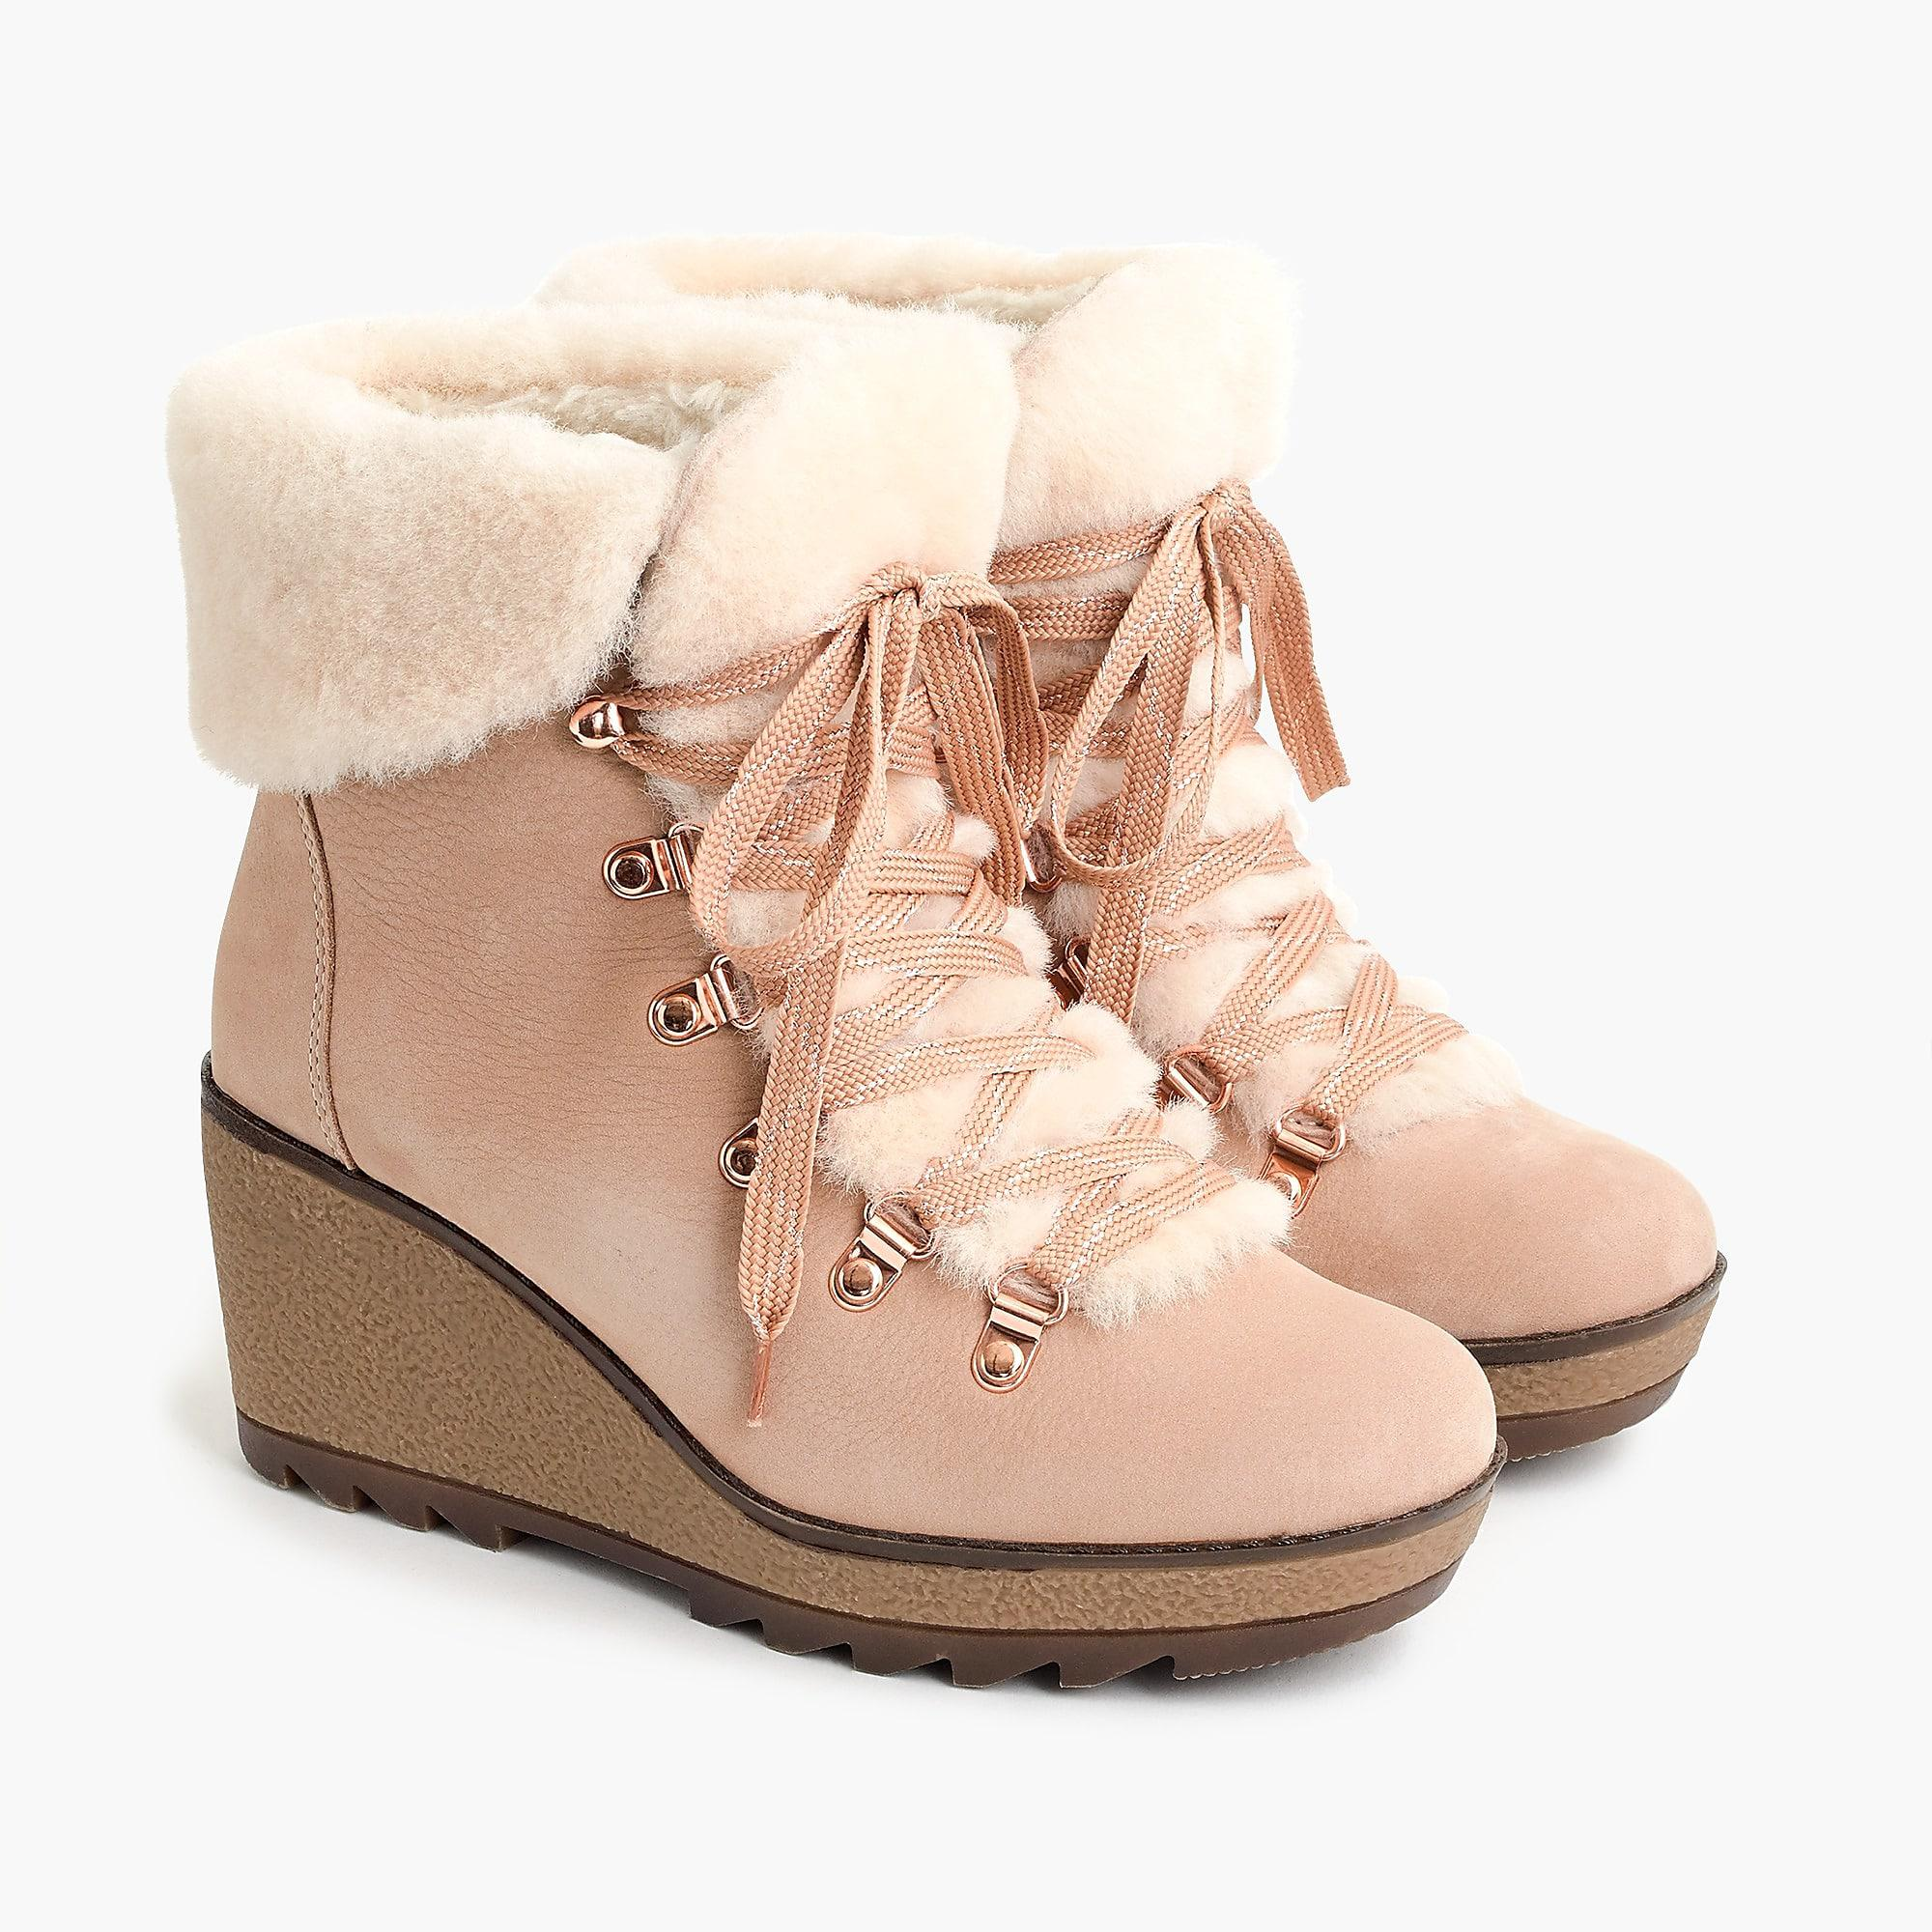 9462d472dc6 J.Crew Nordic Wedge Boots in Pink - Lyst